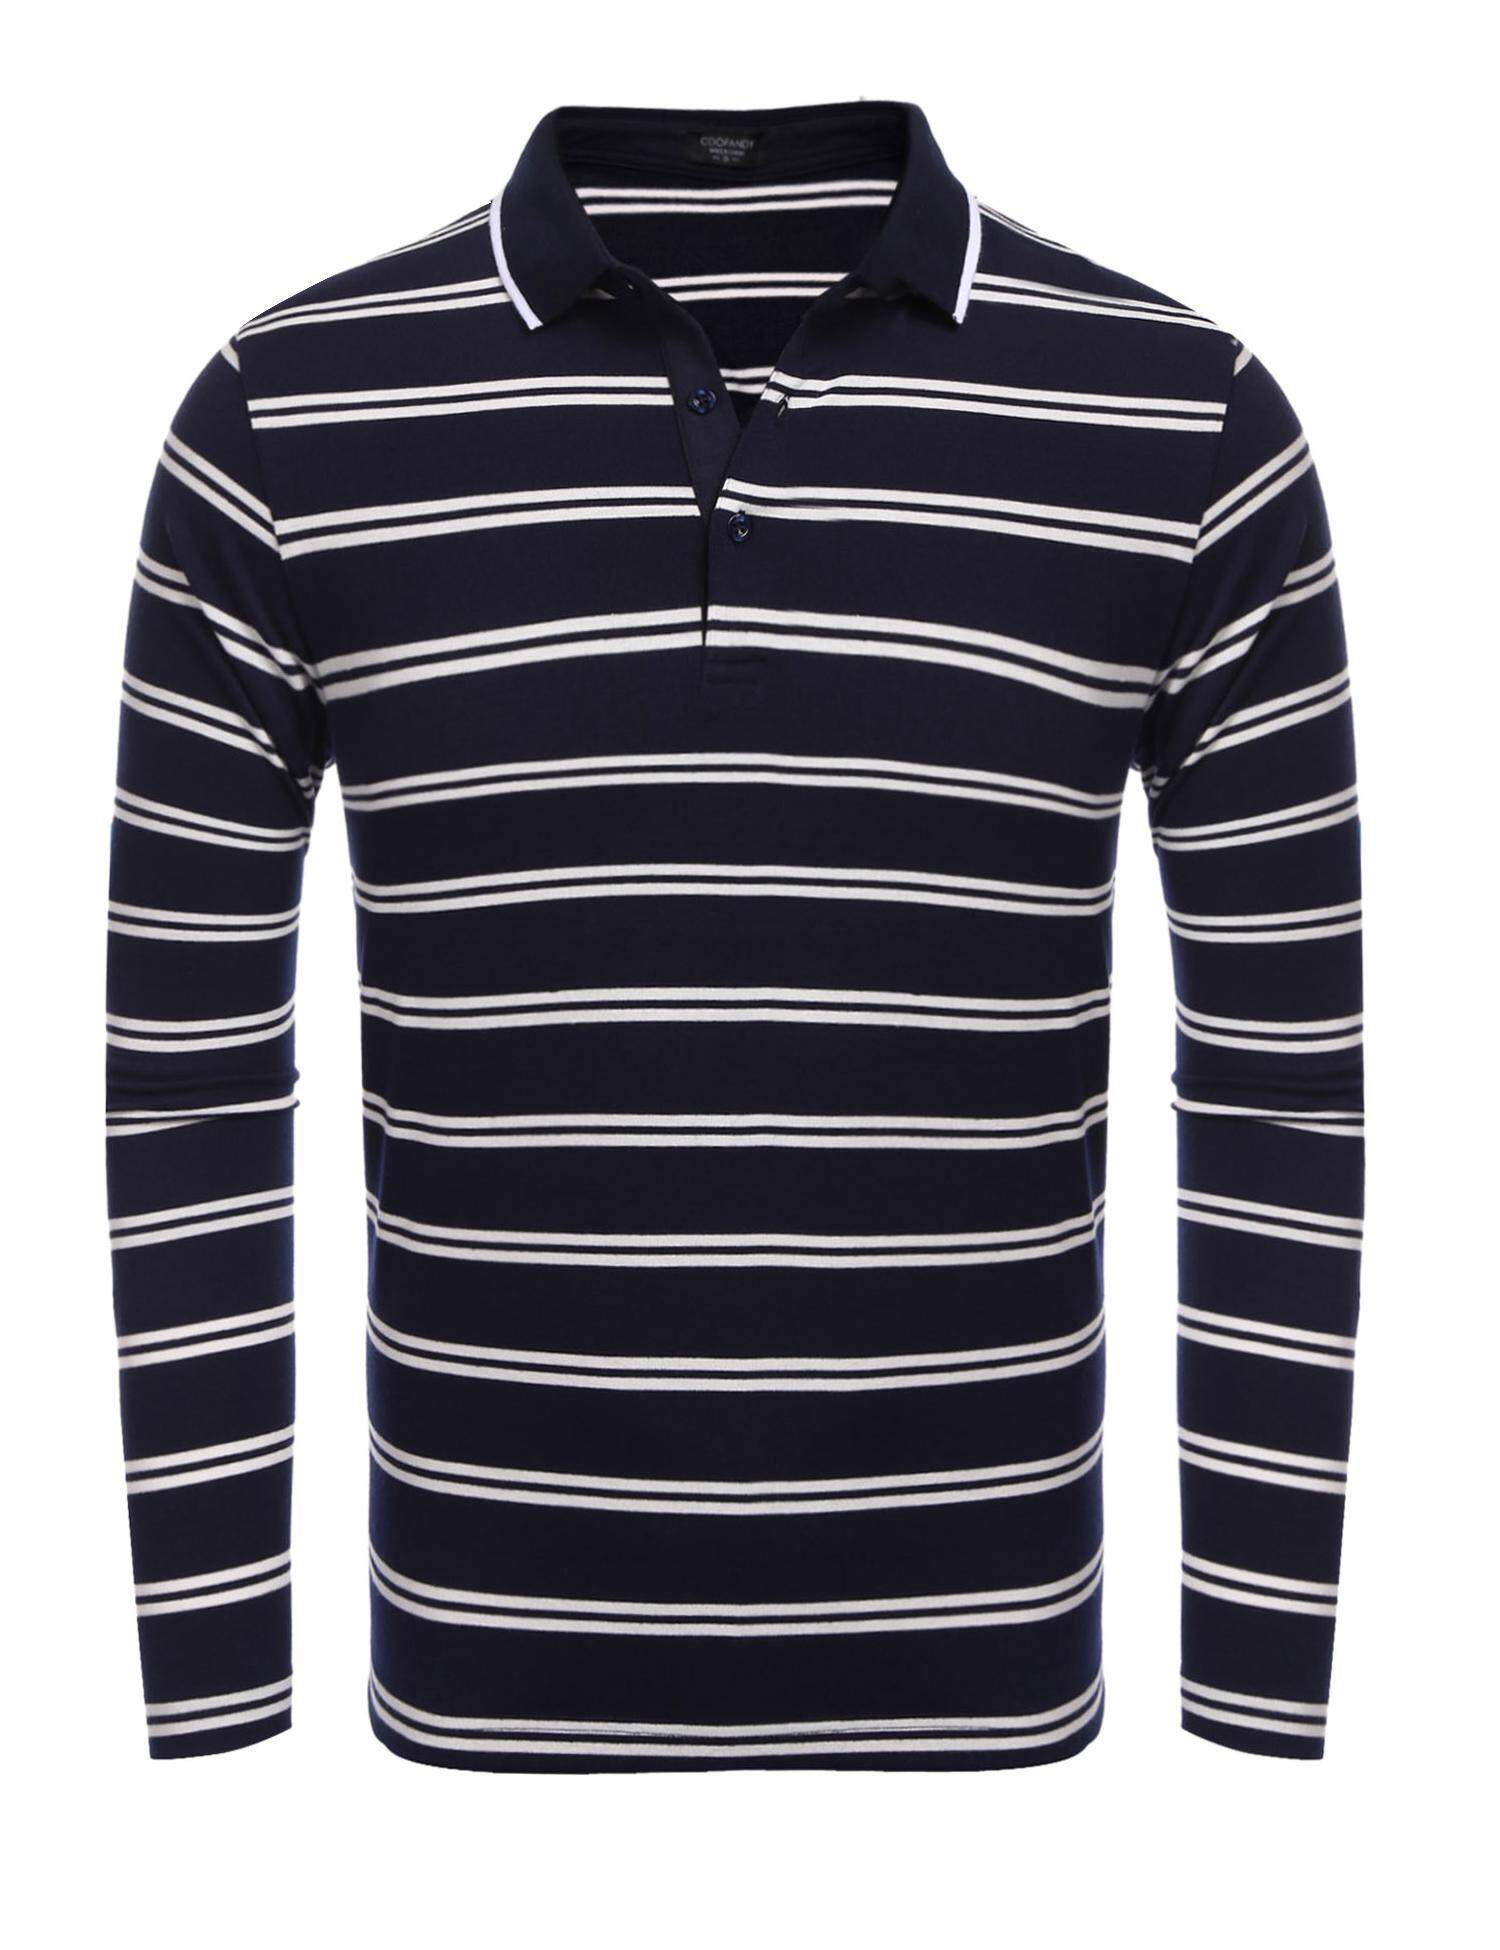 New Arrival Sunwonder Men Casual Polo Shirt Long Sleeve Contrast Color Striped T Shirt(Blue) - intl